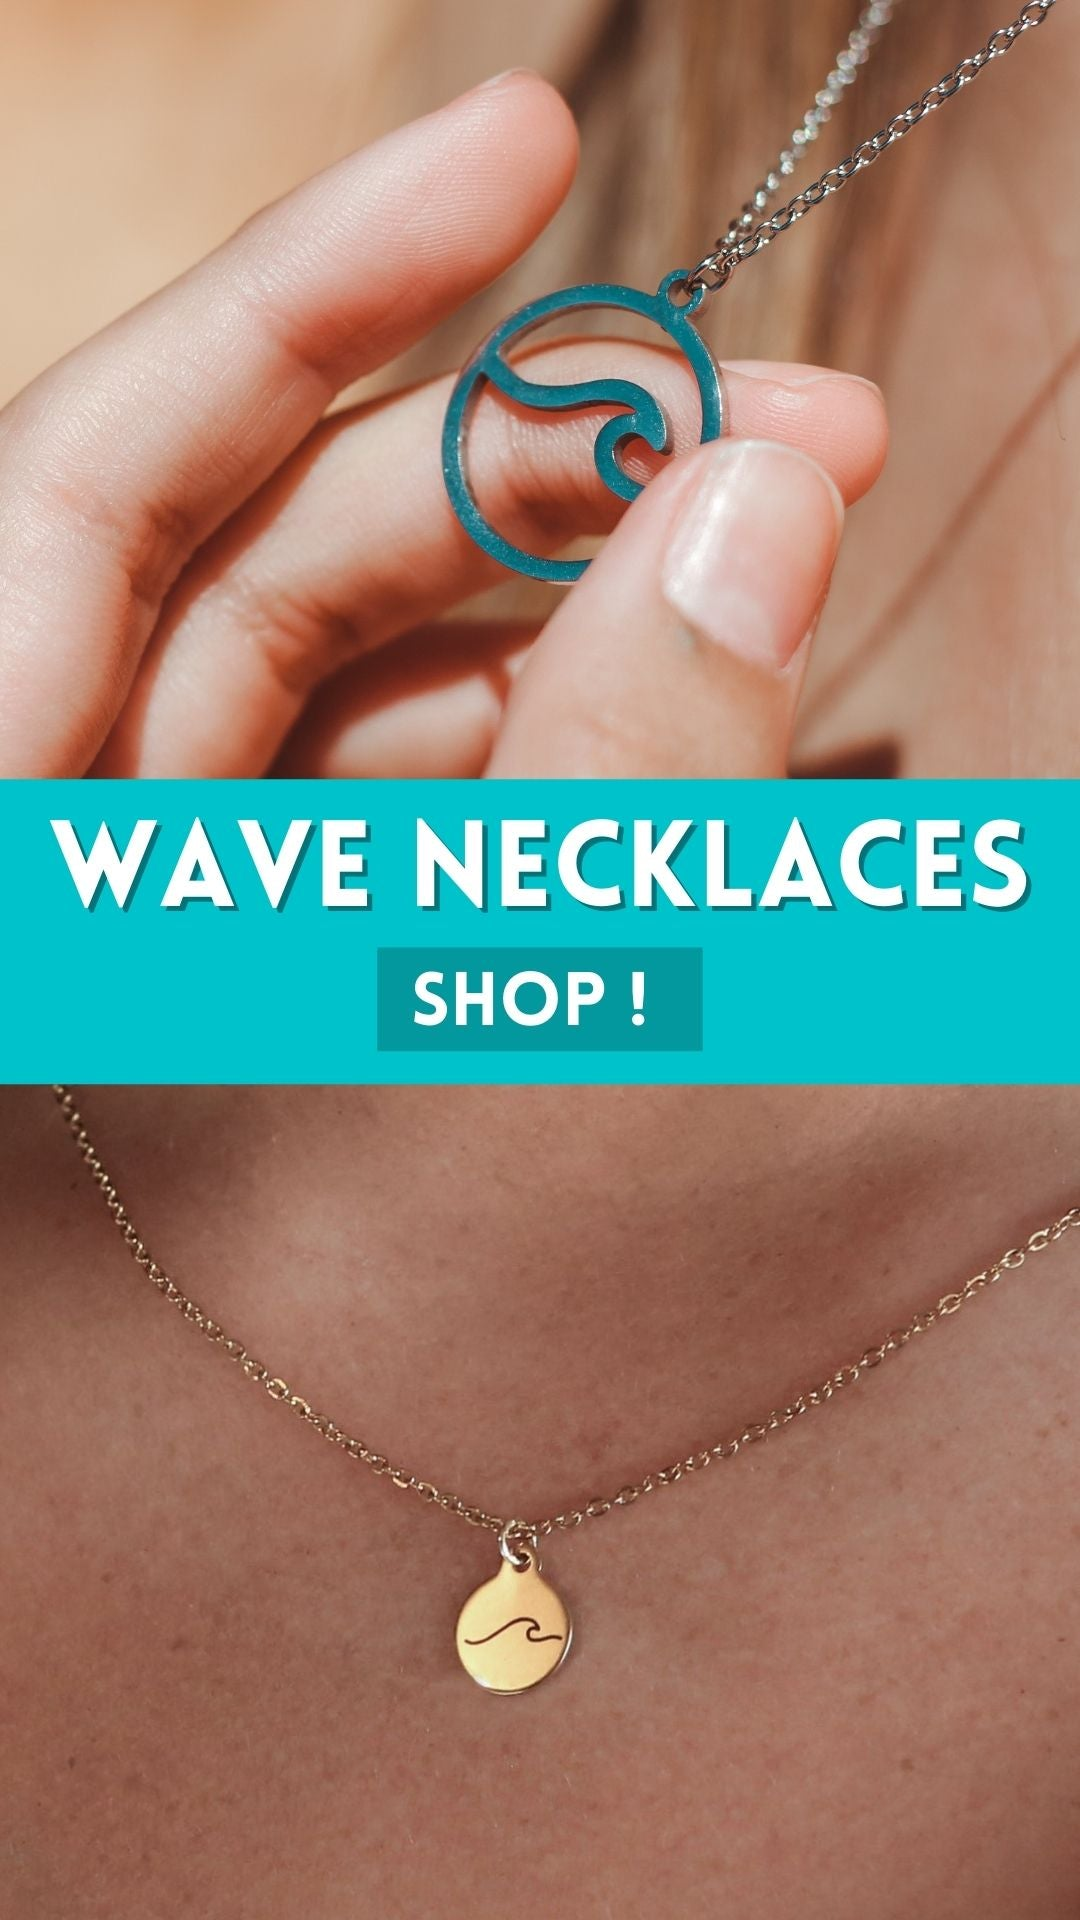 Wave necklace meaning